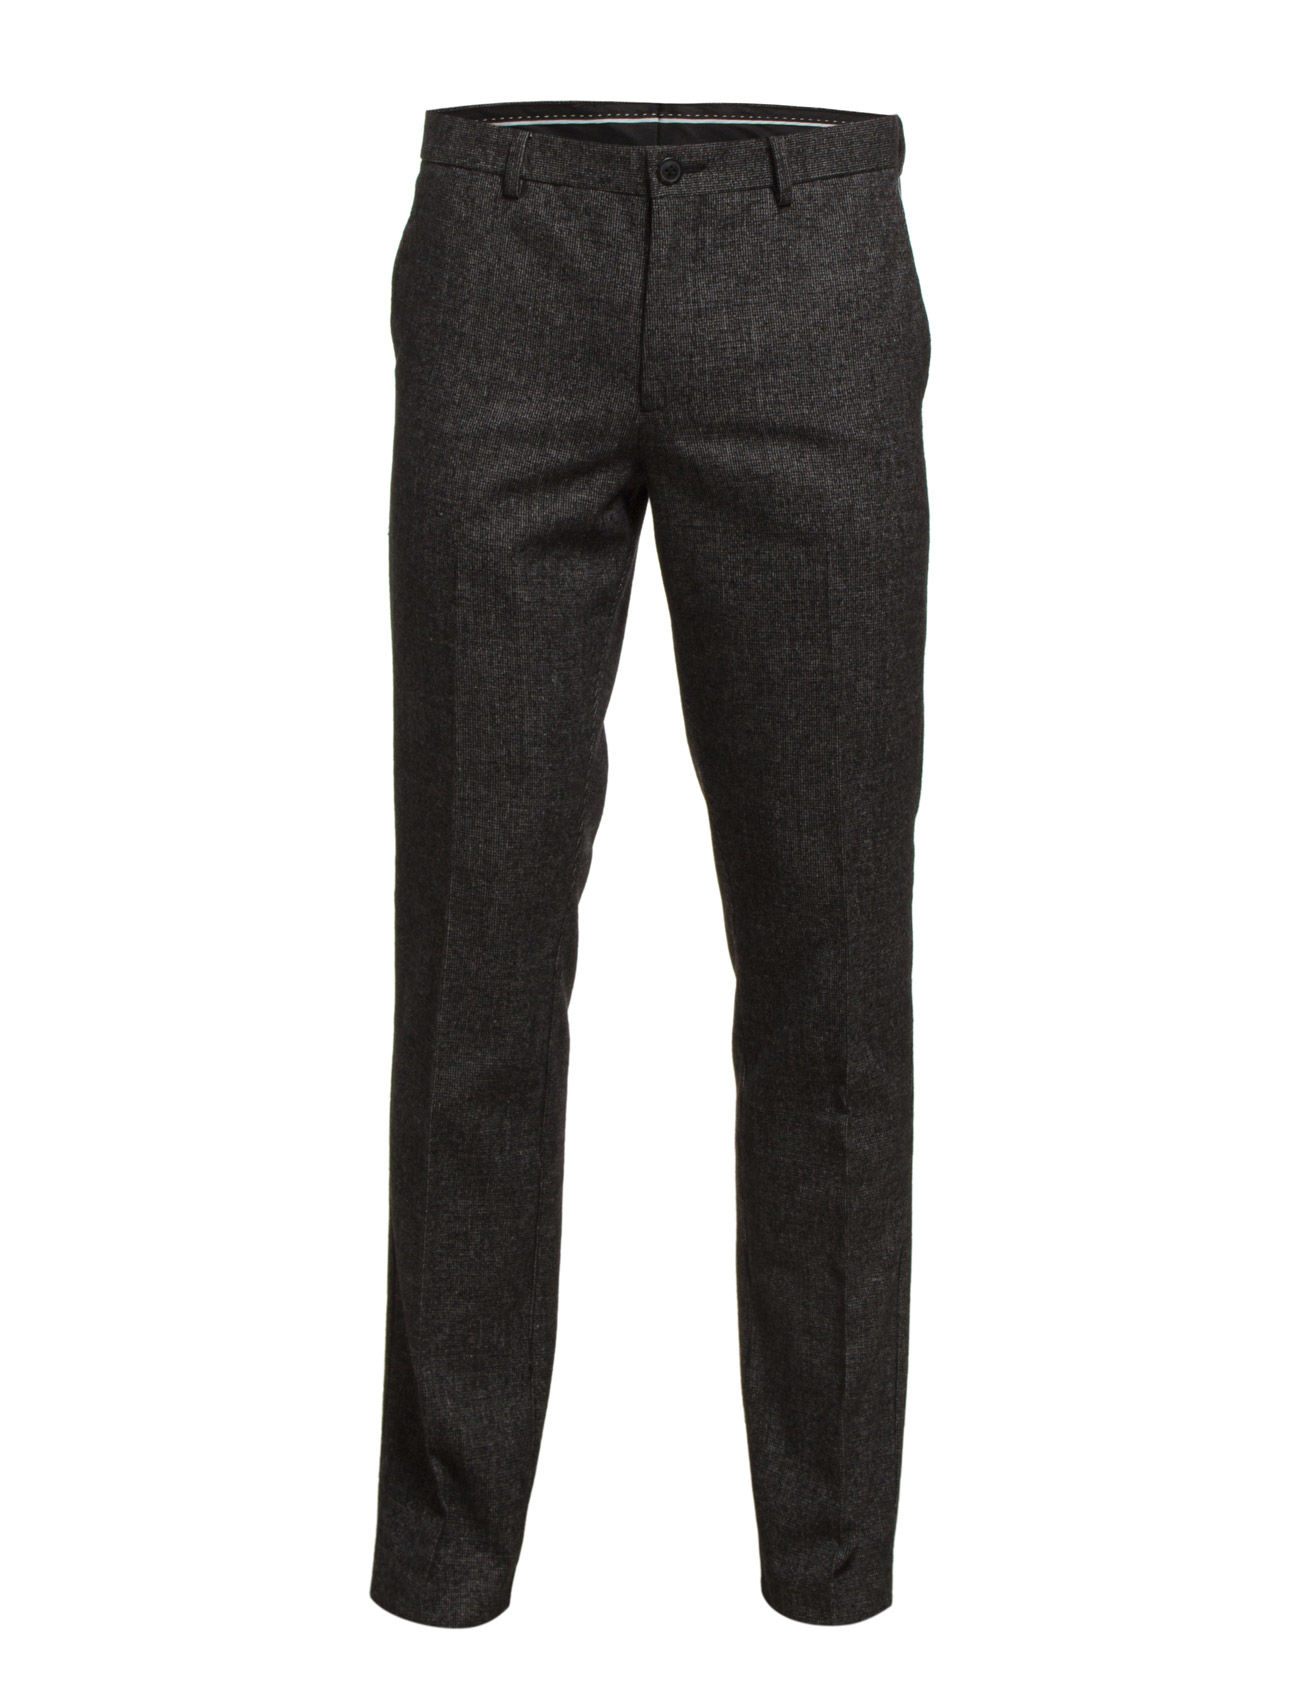 One Benson Salt Peber Trouser Id